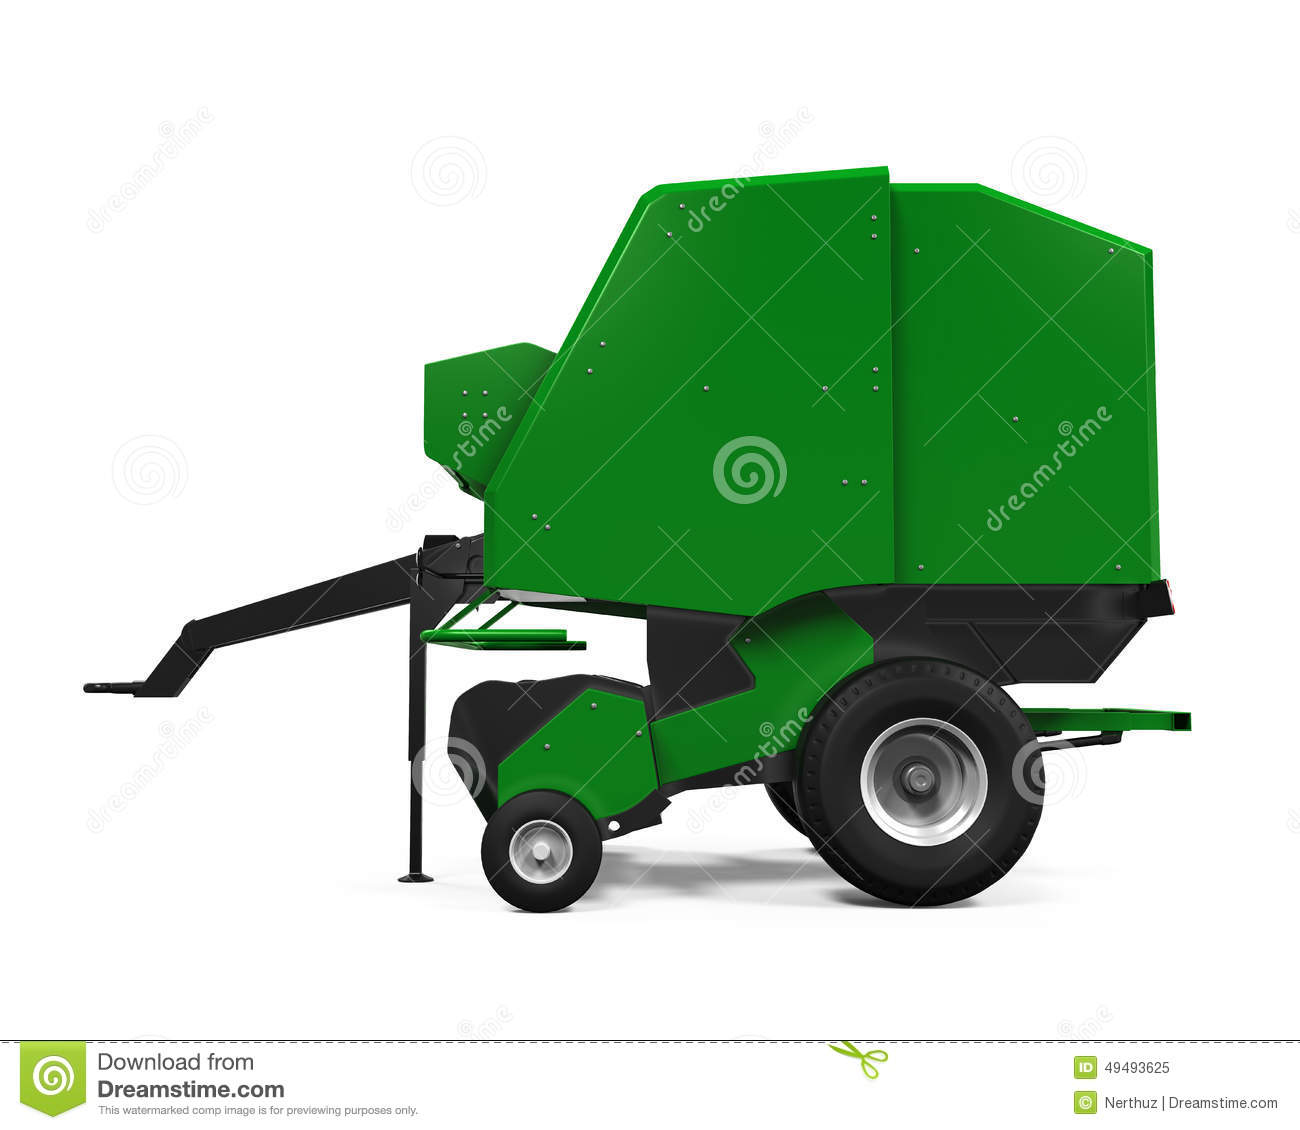 Tractor and baler clipart.